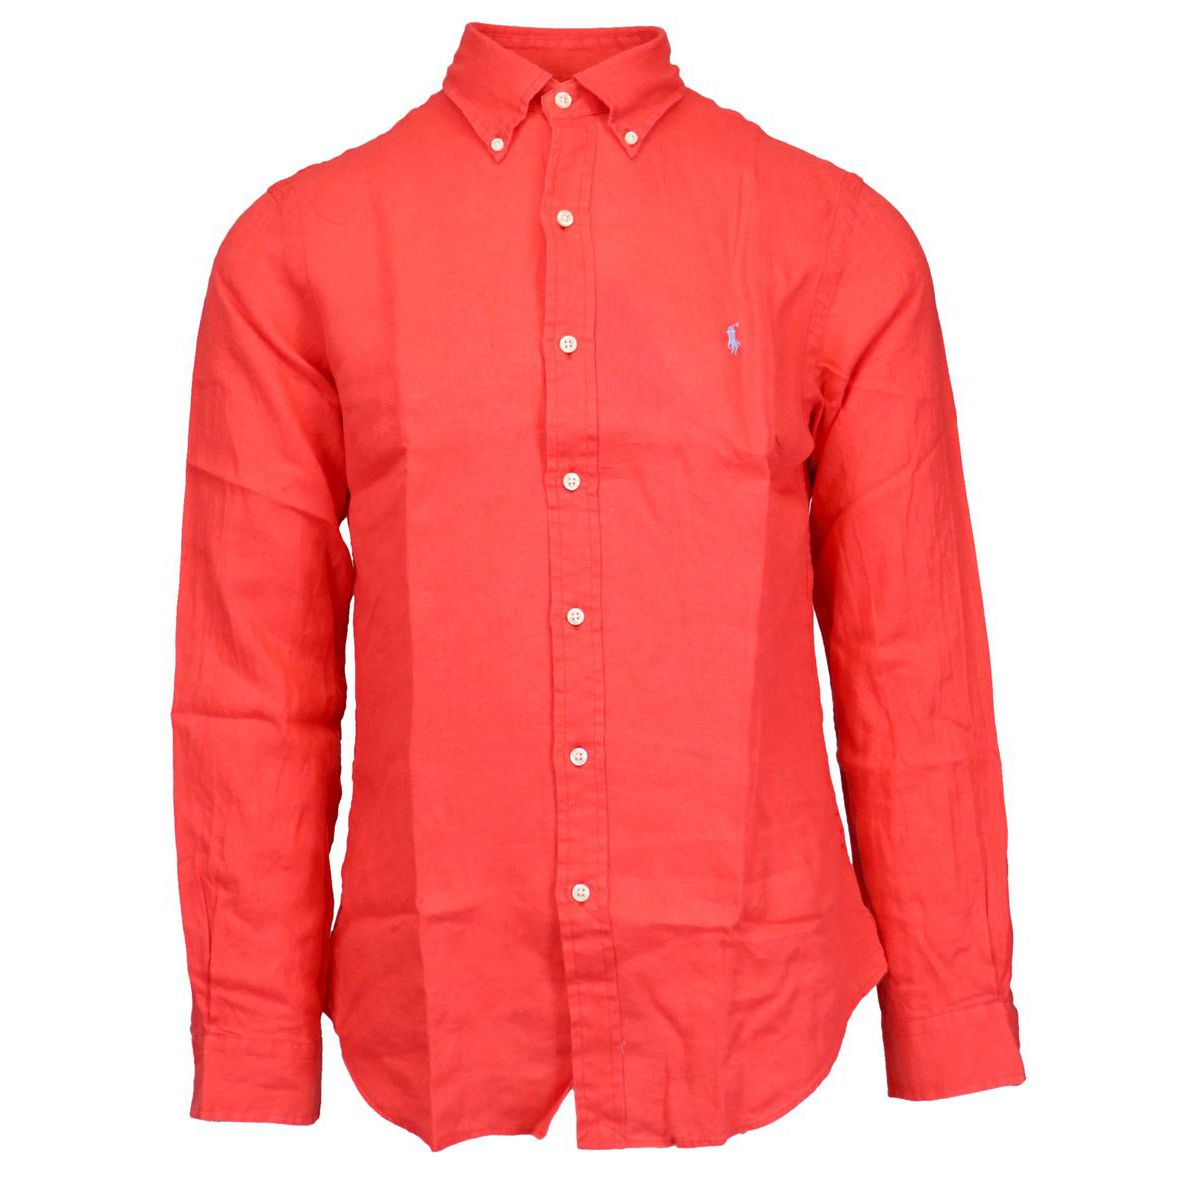 Slim-fit button-down linen shirt Coral Polo Ralph Lauren